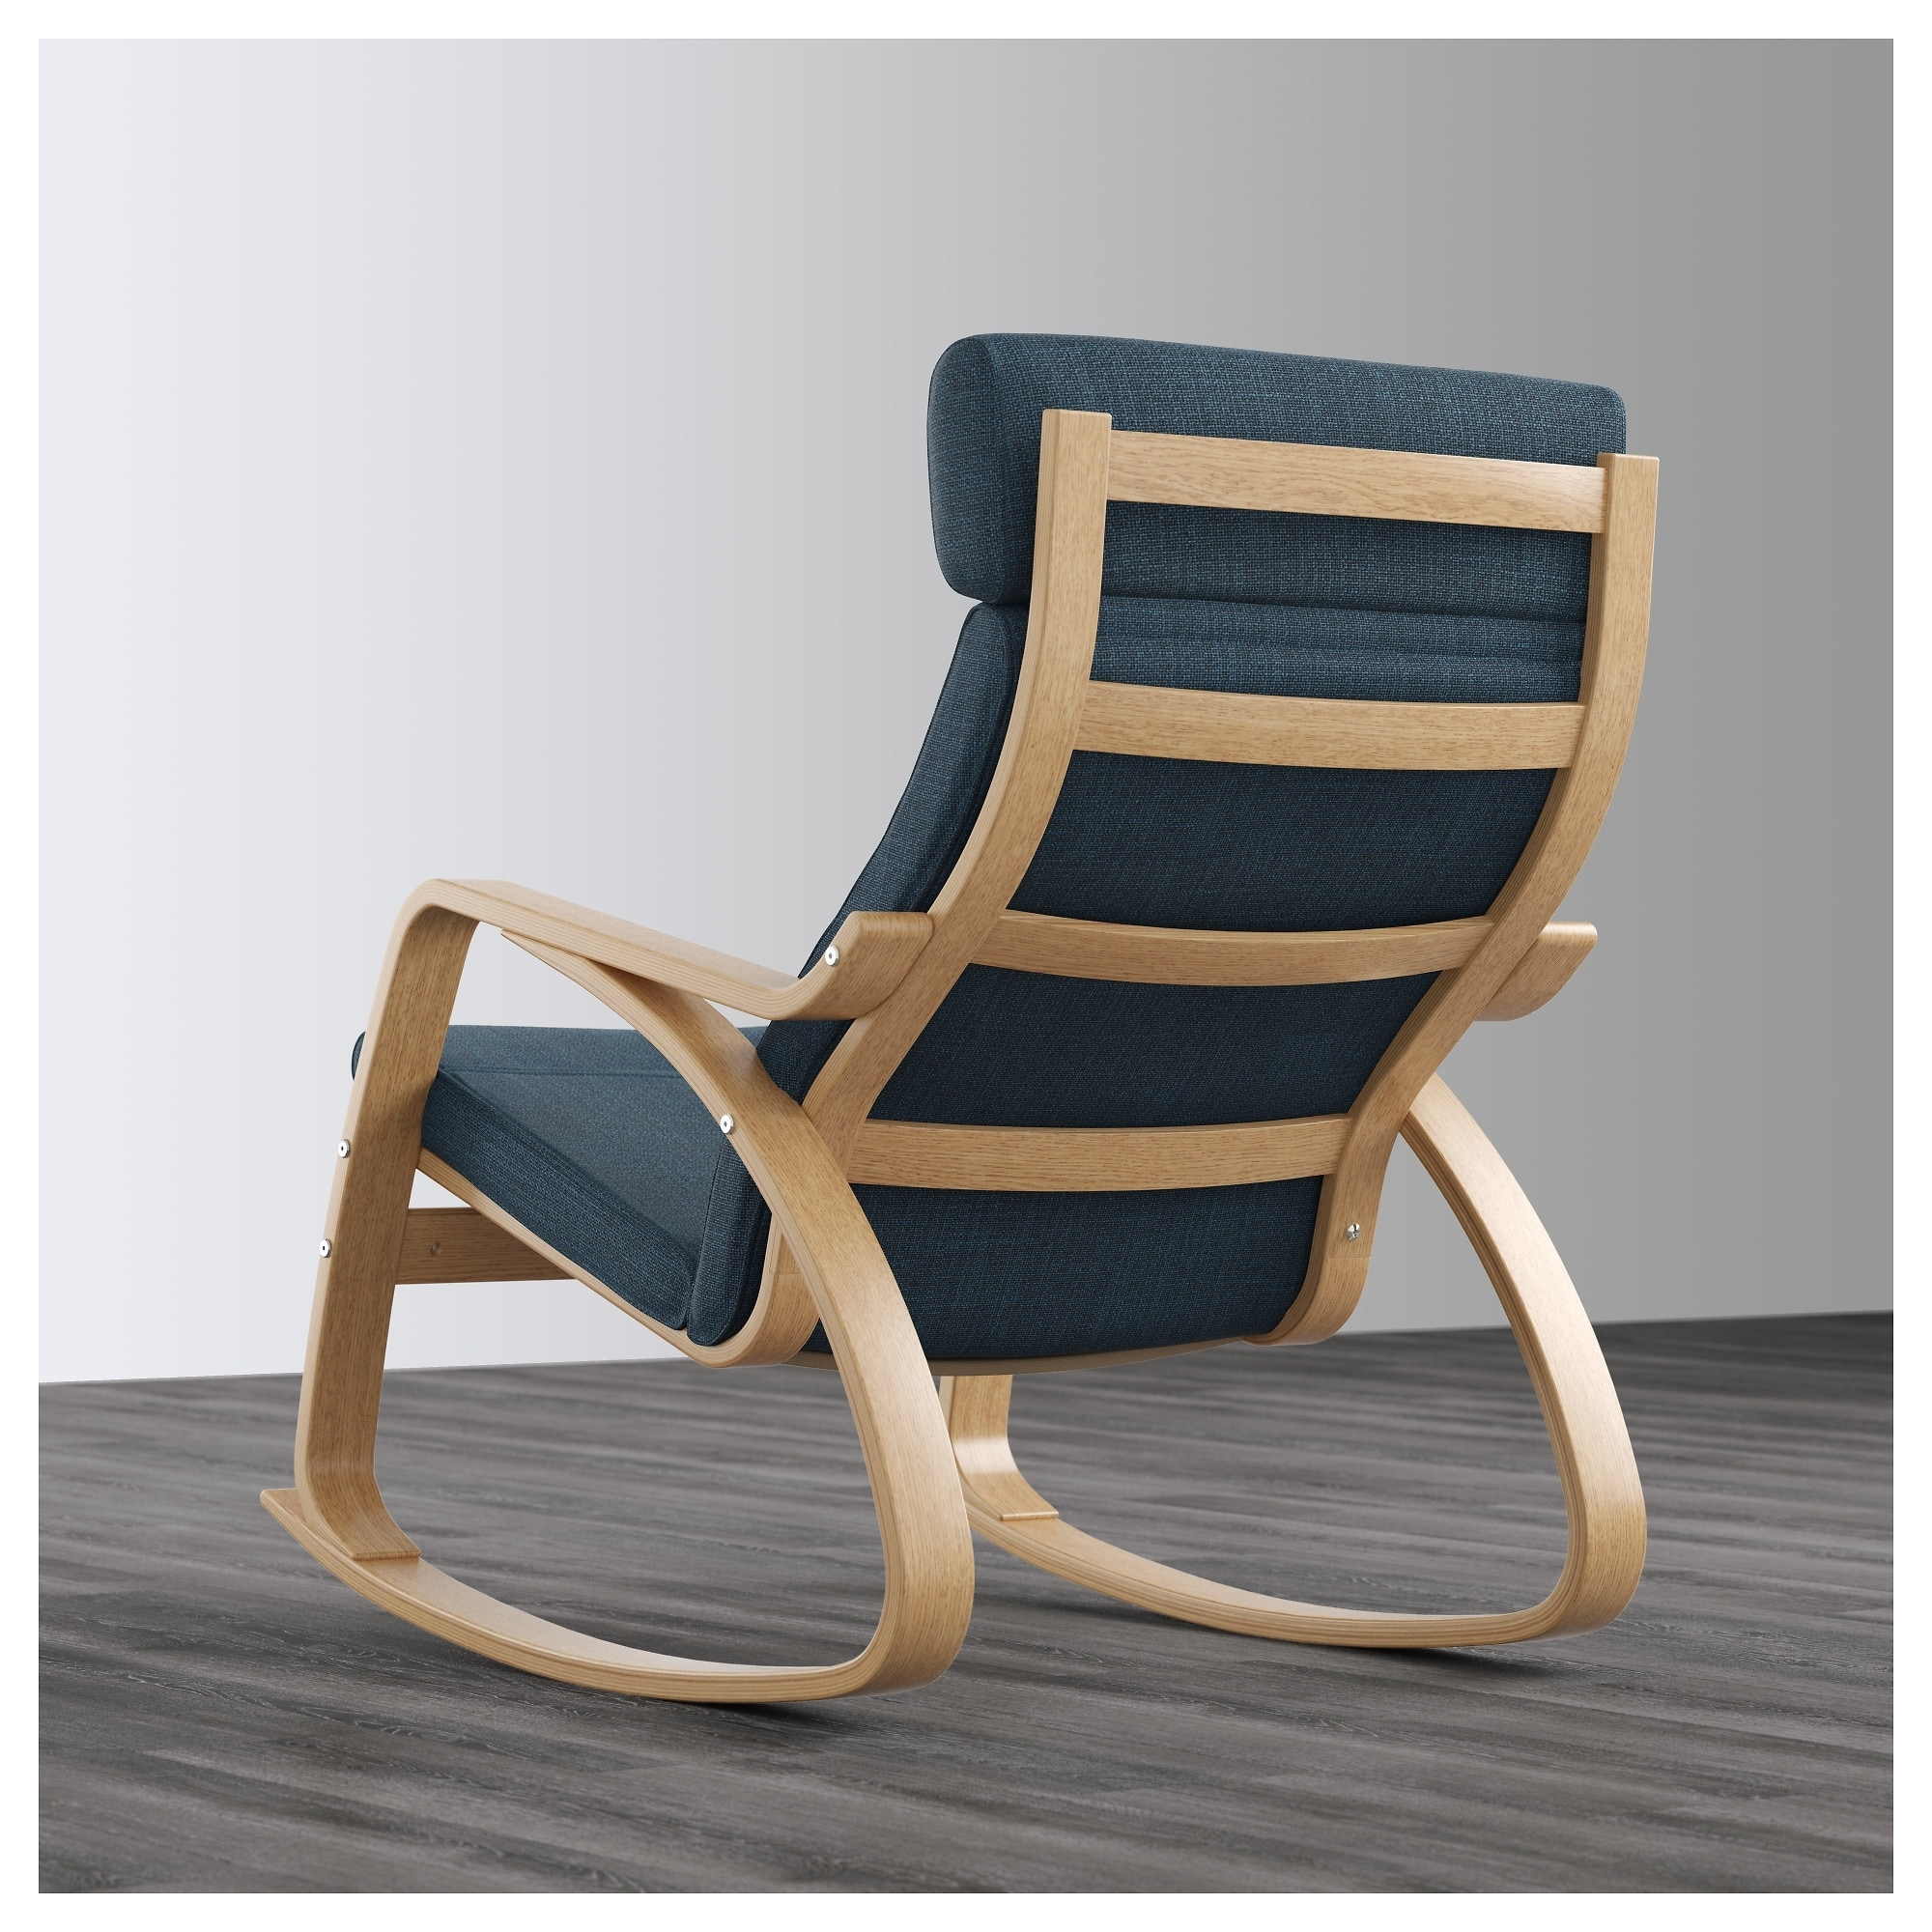 Most Current Ikea Rocking Chairs Pertaining To Poäng Rocking Chair Oak Veneer/hillared Dark Blue – Ikea (View 13 of 15)